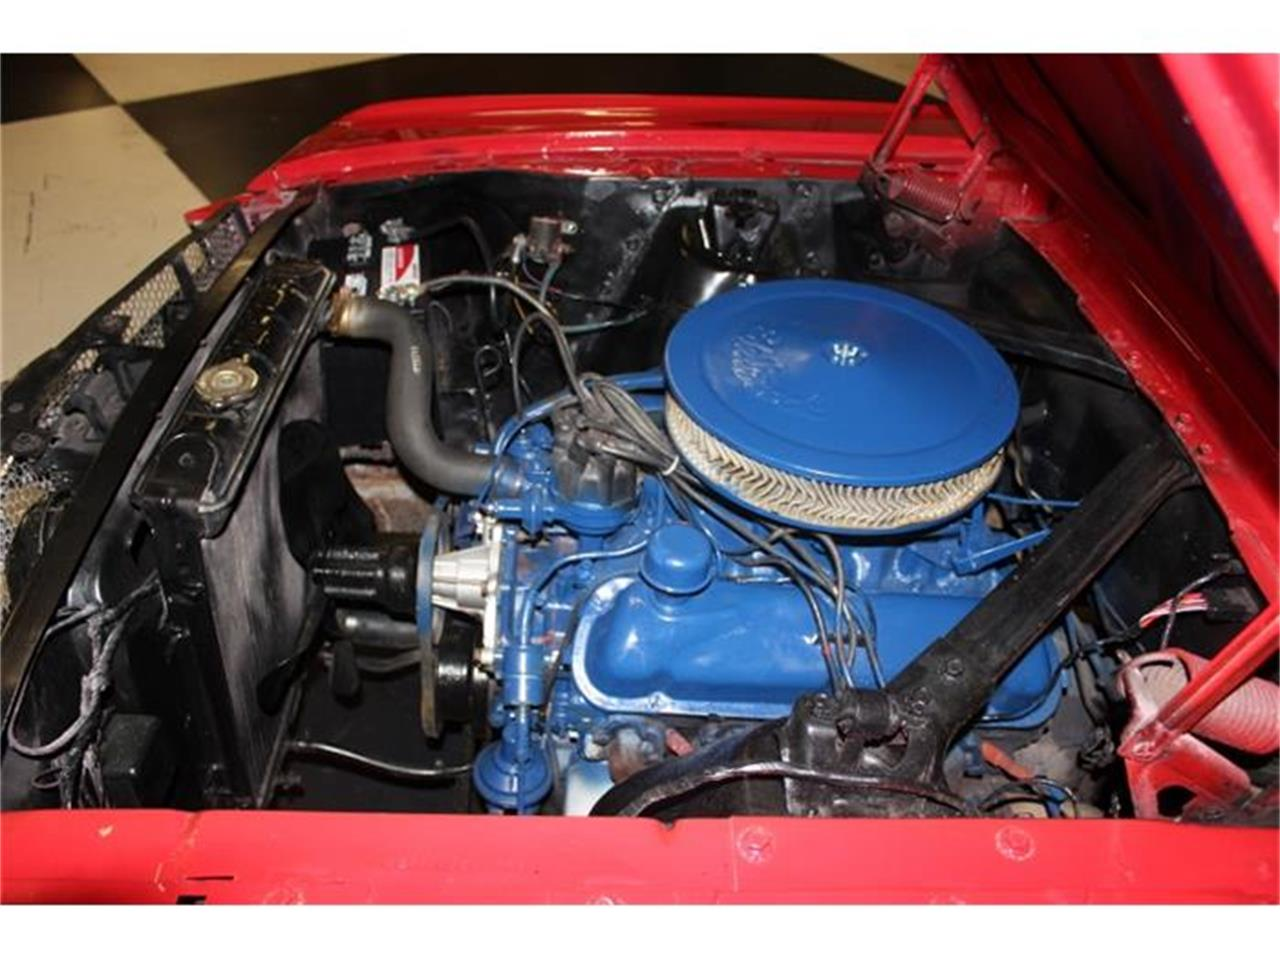 Large Picture of Classic '65 Ford Mustang located in Lillington North Carolina - $19,500.00 - EK0D